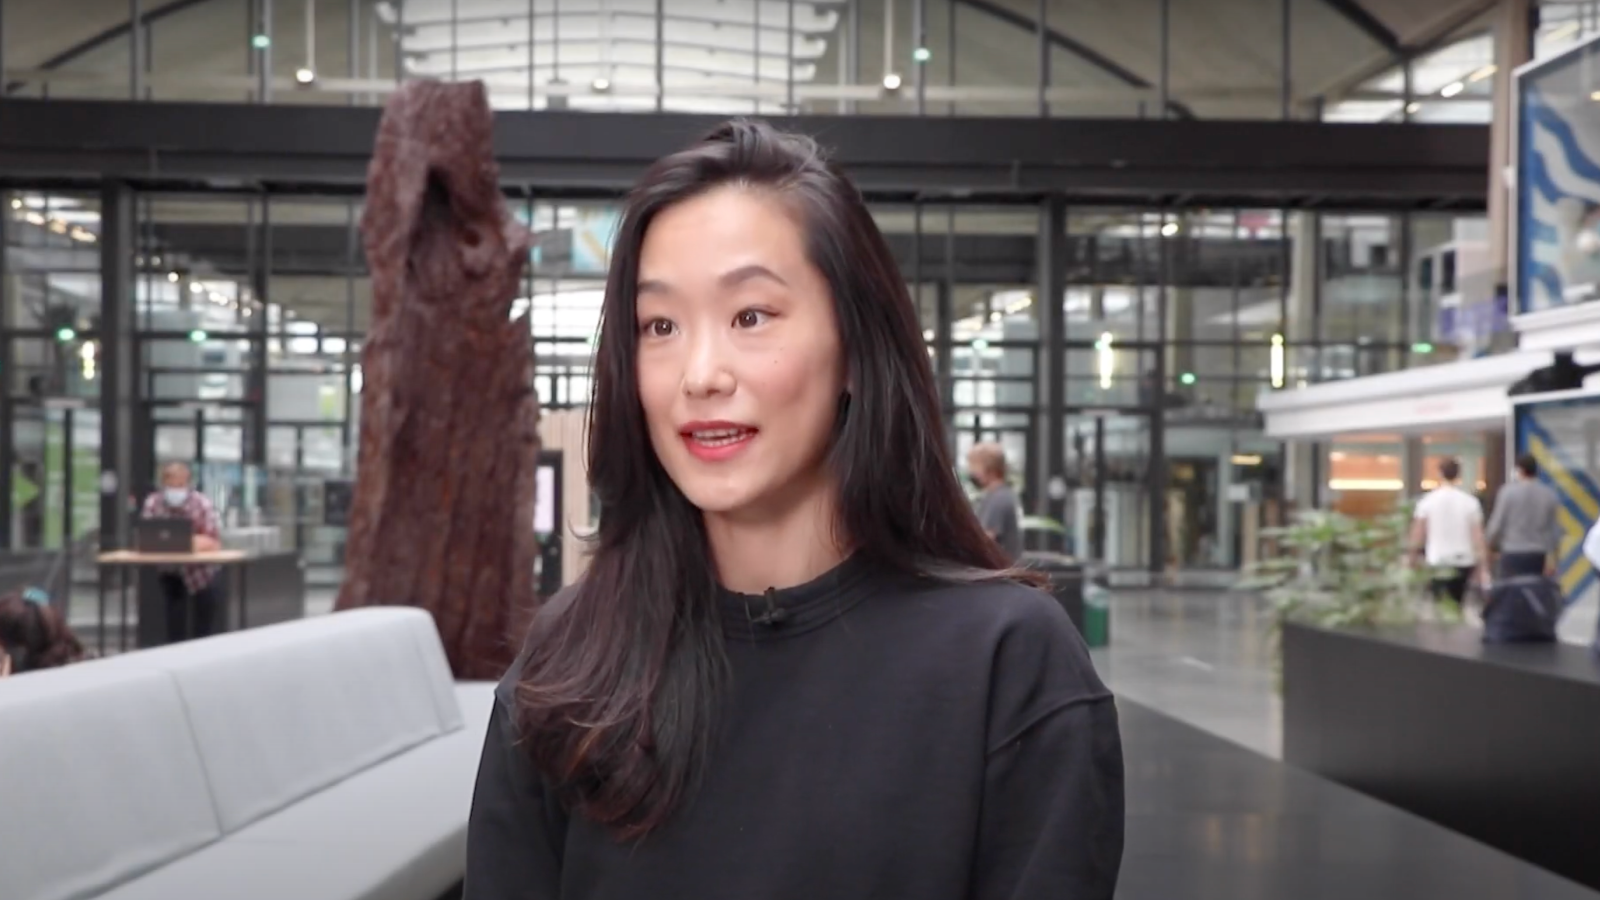 Ying Shao, Co-Founder & CEO of Plantik Biosciences